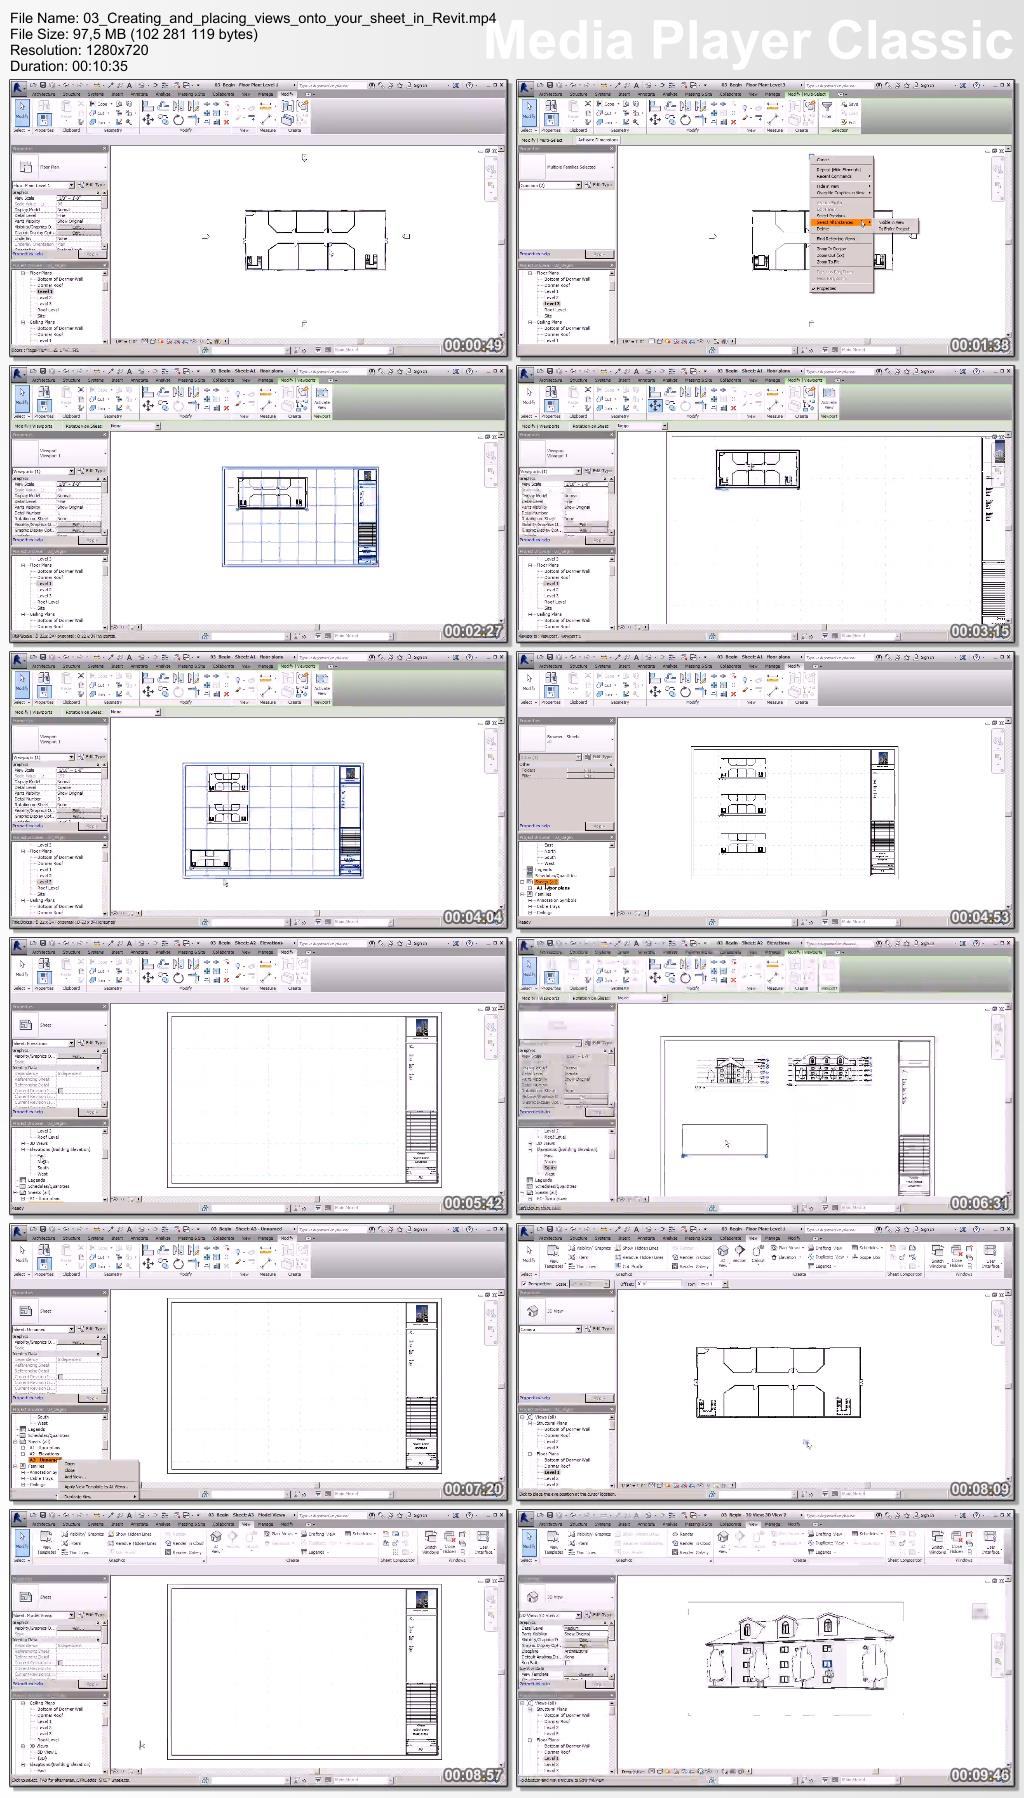 Dixxl Tuxxs - Working With Sheets in Revit